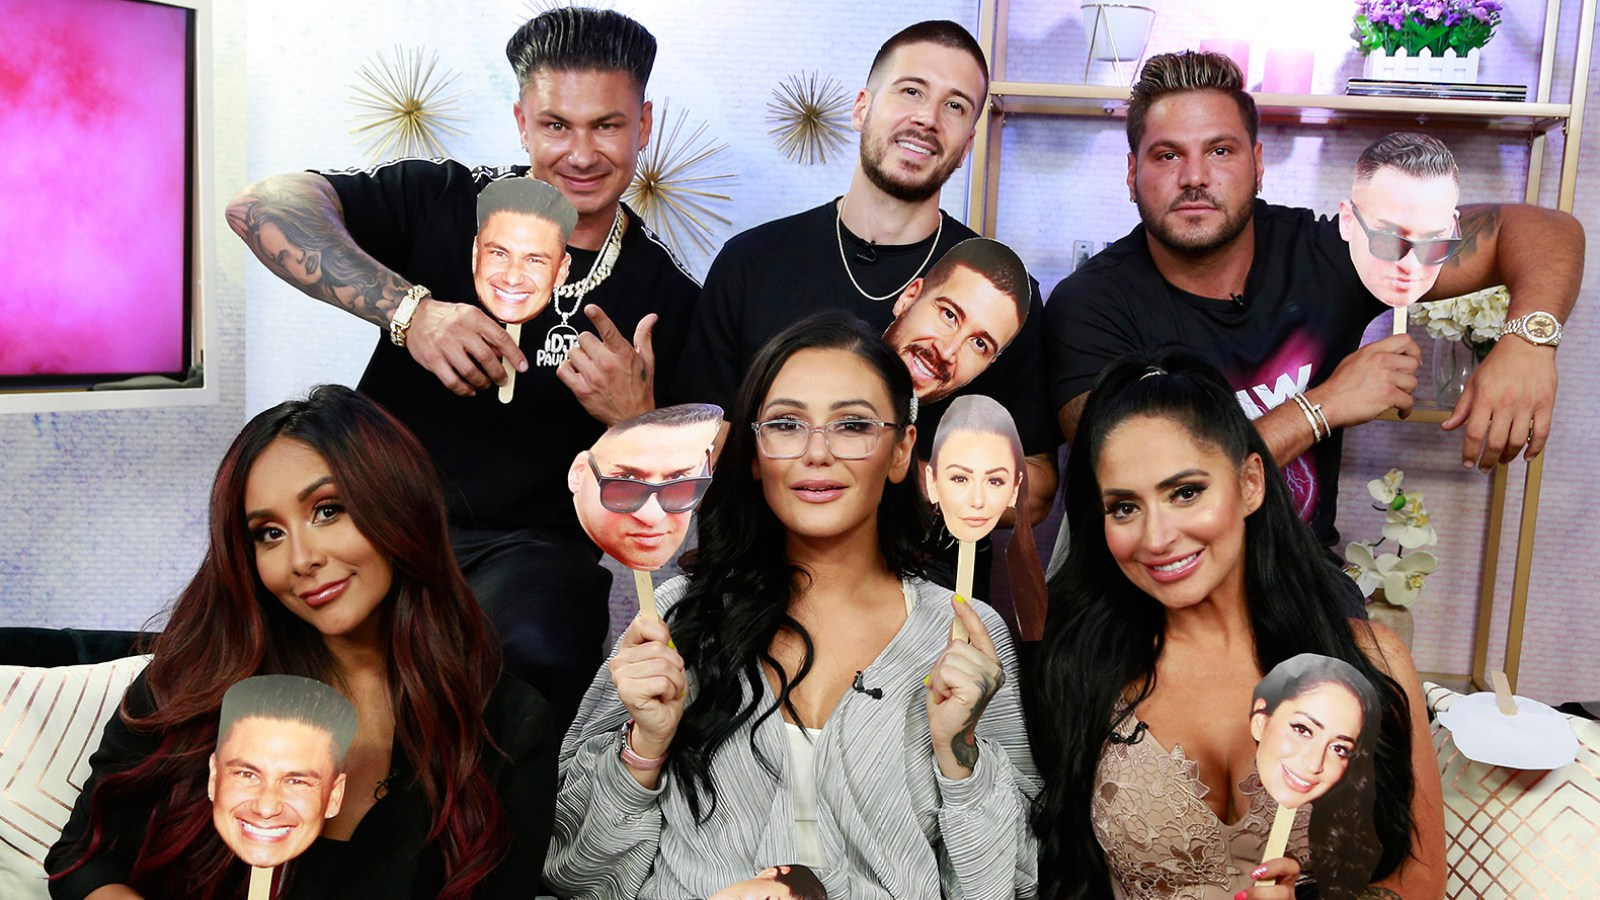 Jersey Shore' Cast Reveals Plans for Mike Sorrentino After